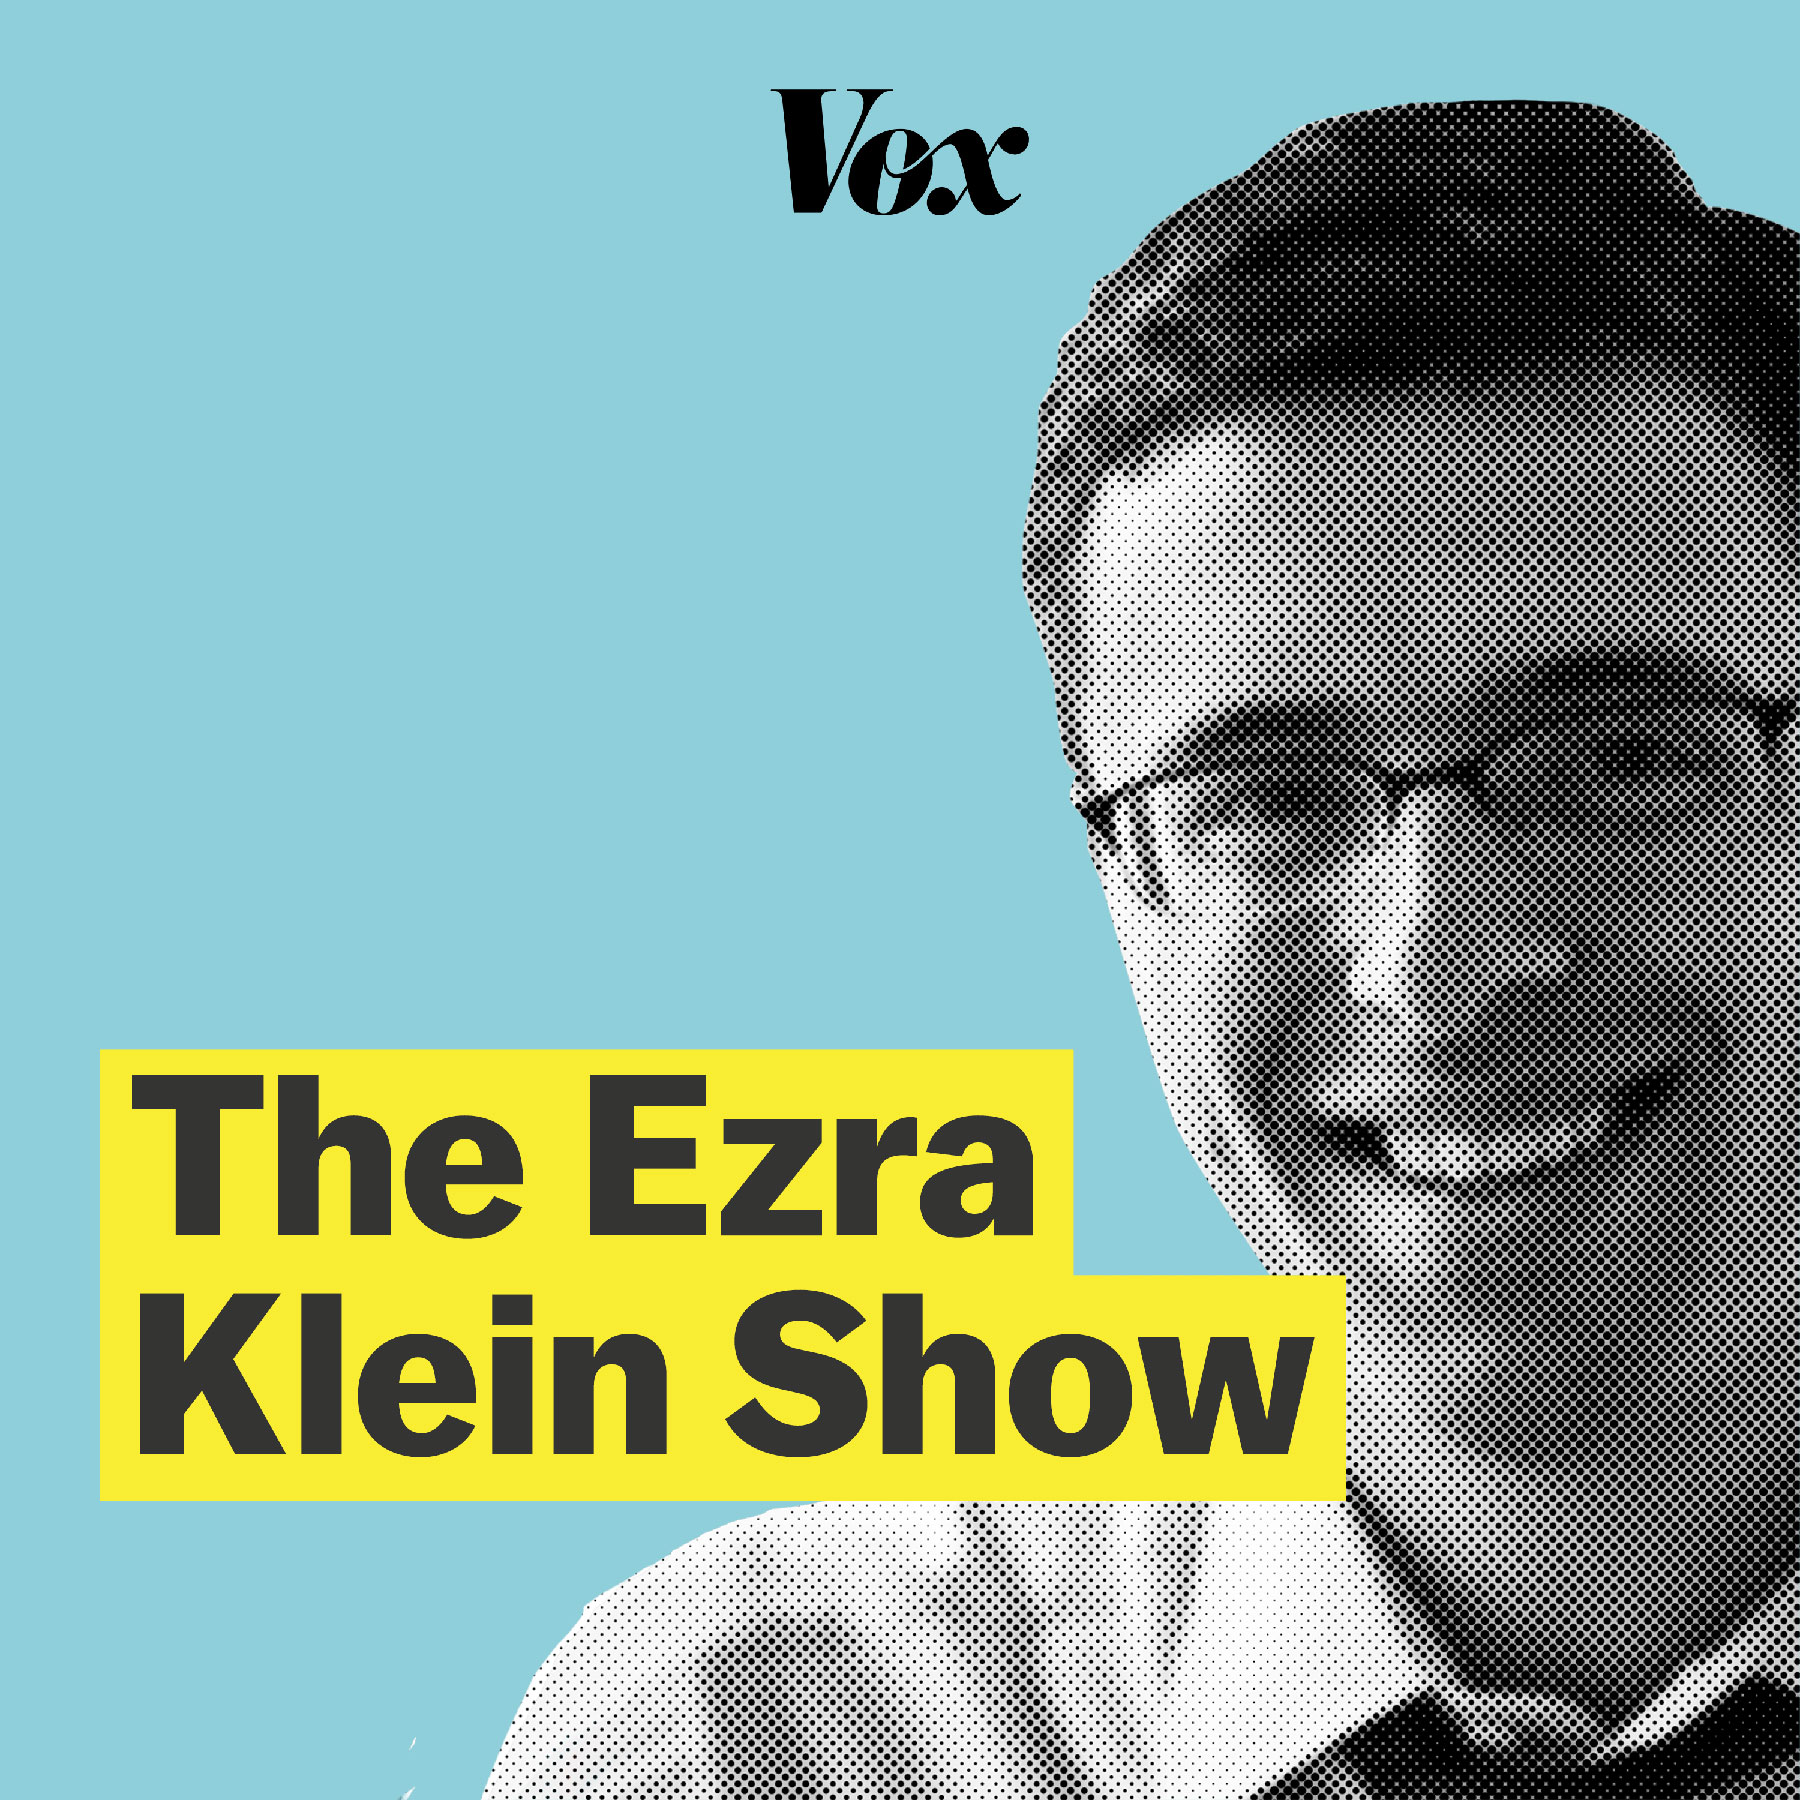 The Ezra Klein Show Podcast